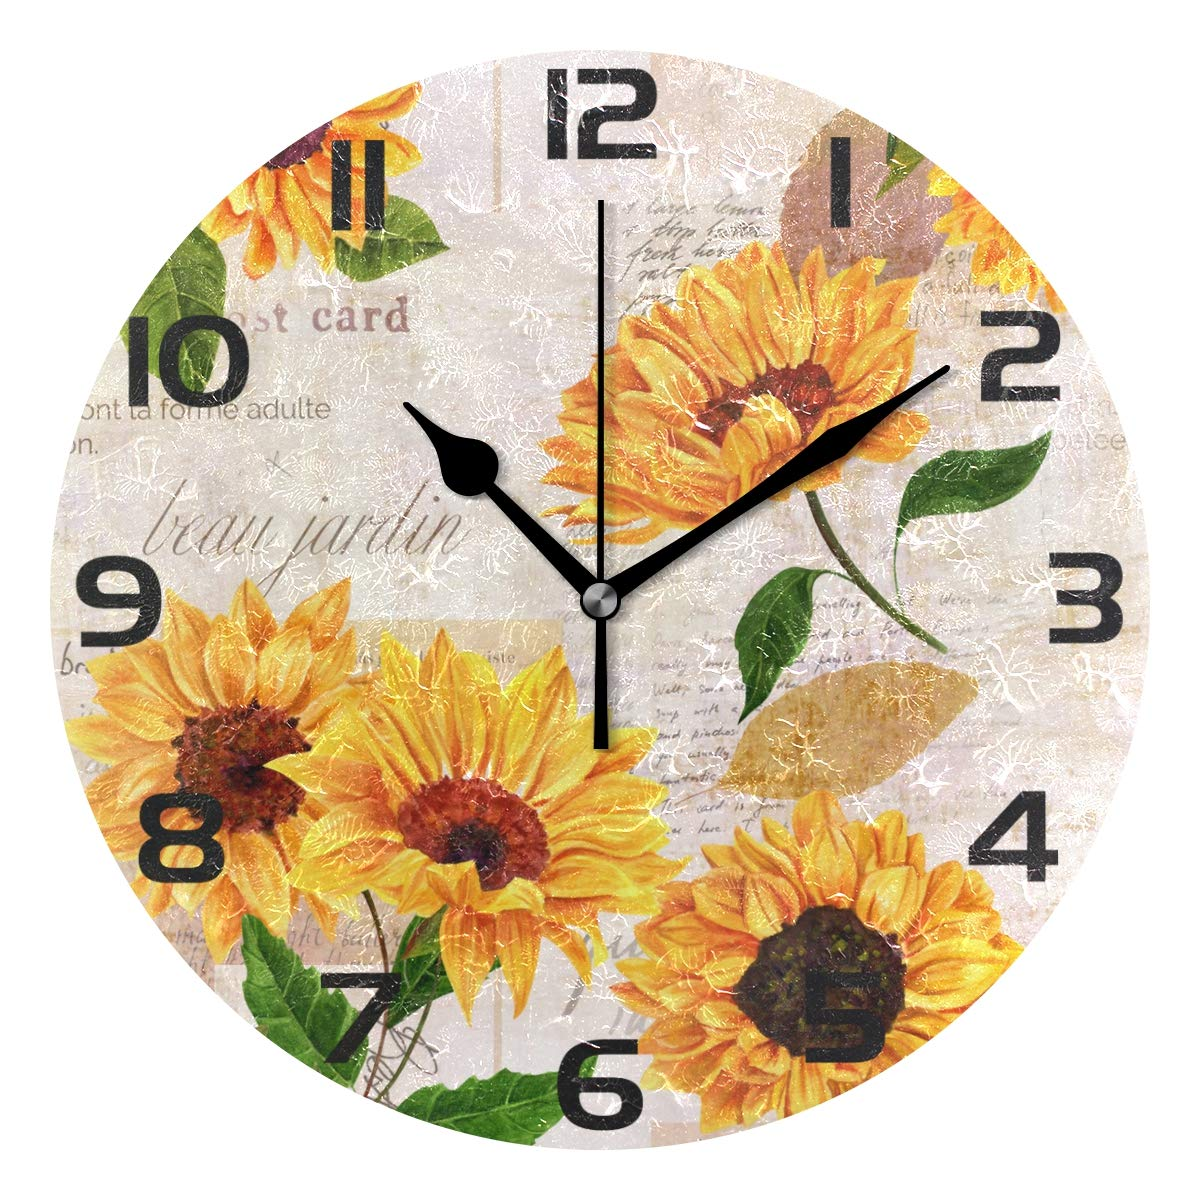 WellLee Vibrant Yellow Sunflower Clock Acrylic Painted Silent Non-Ticking Round Wall Clock Home Art Bedroom Living Dorm Room Decor